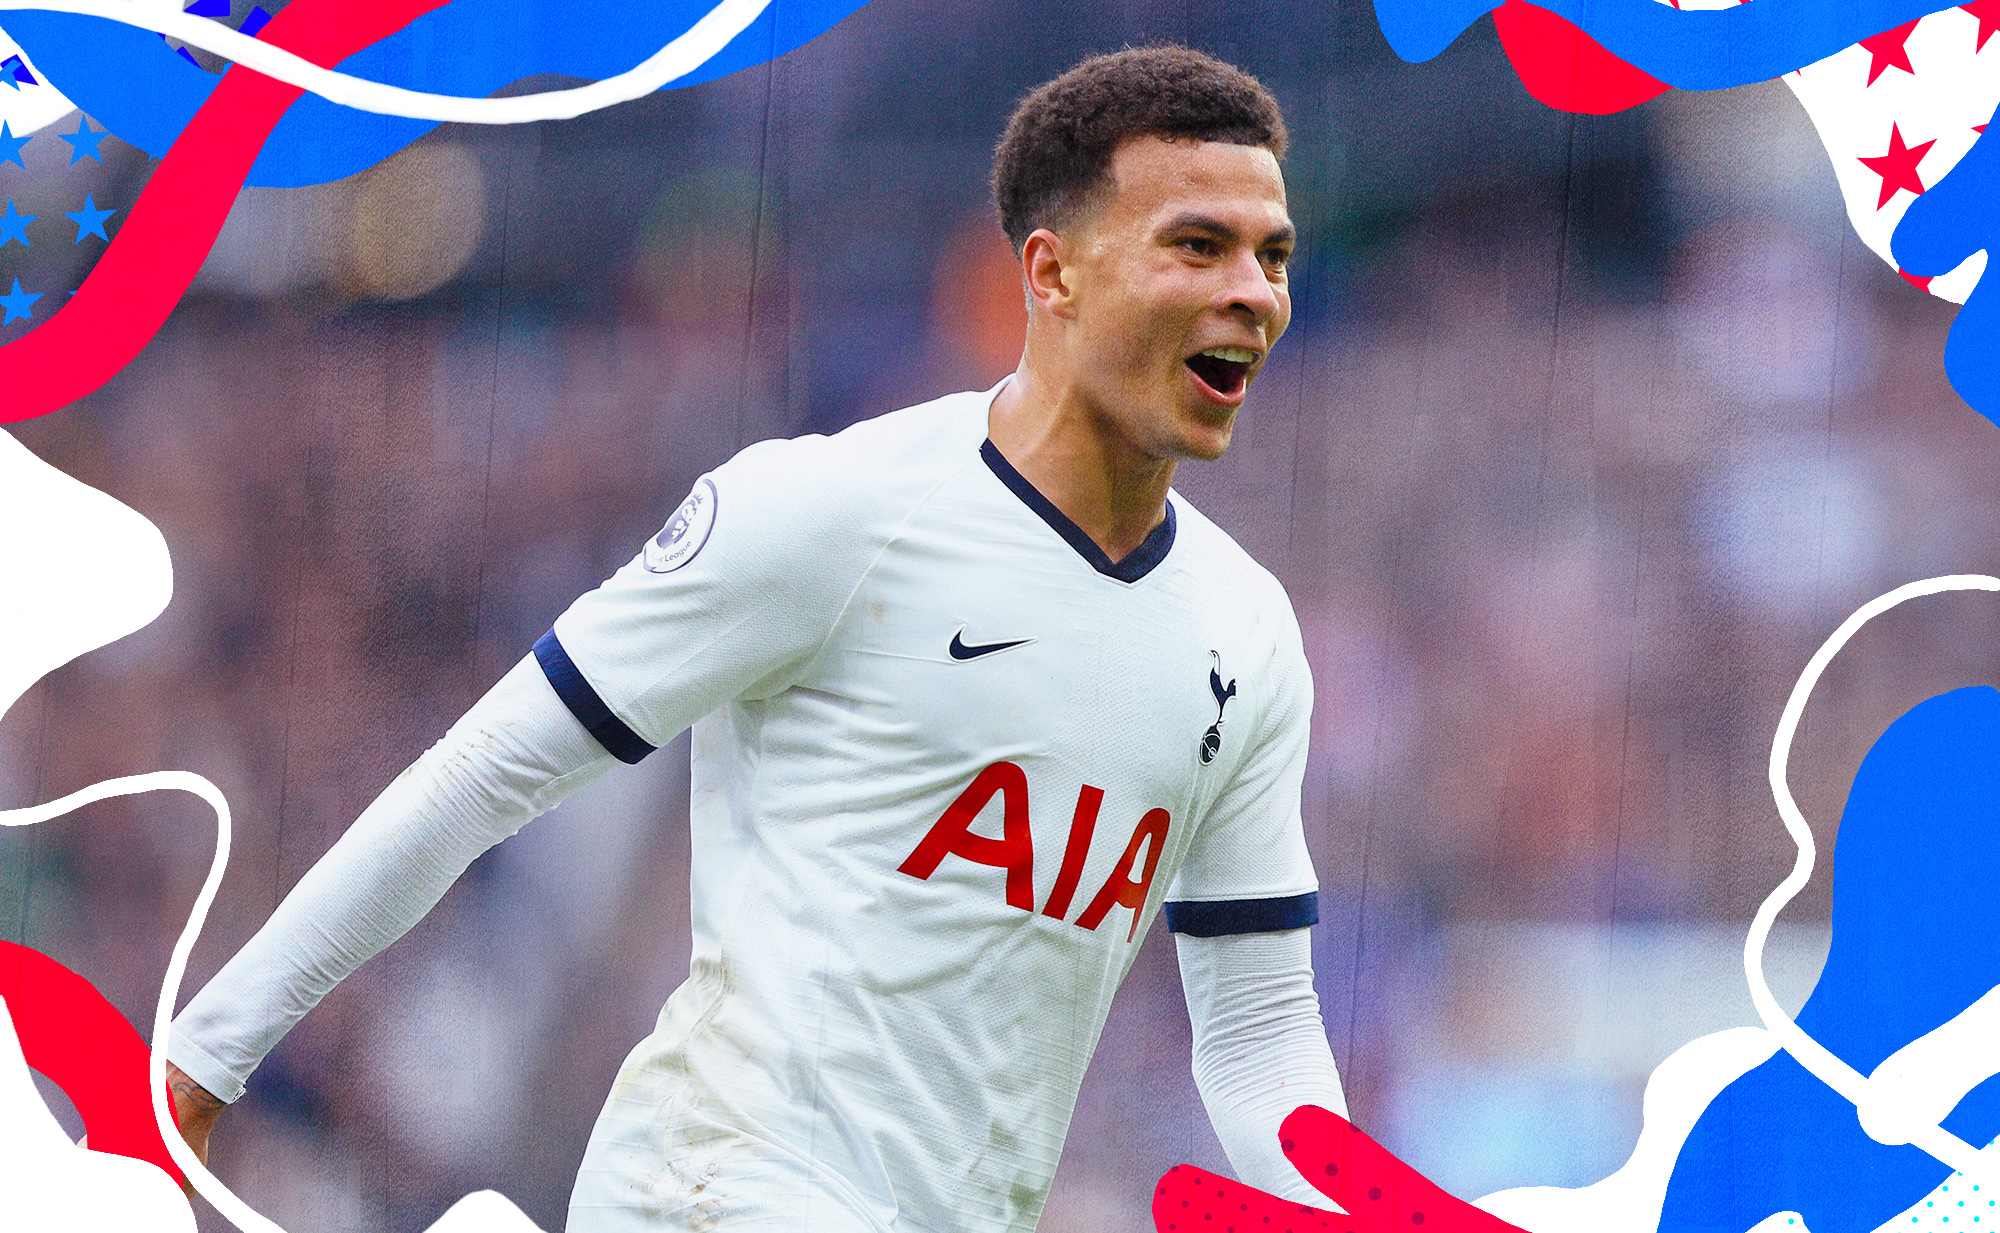 Tactically Naive: Jose Mourinho has banished Dele Alli's brother